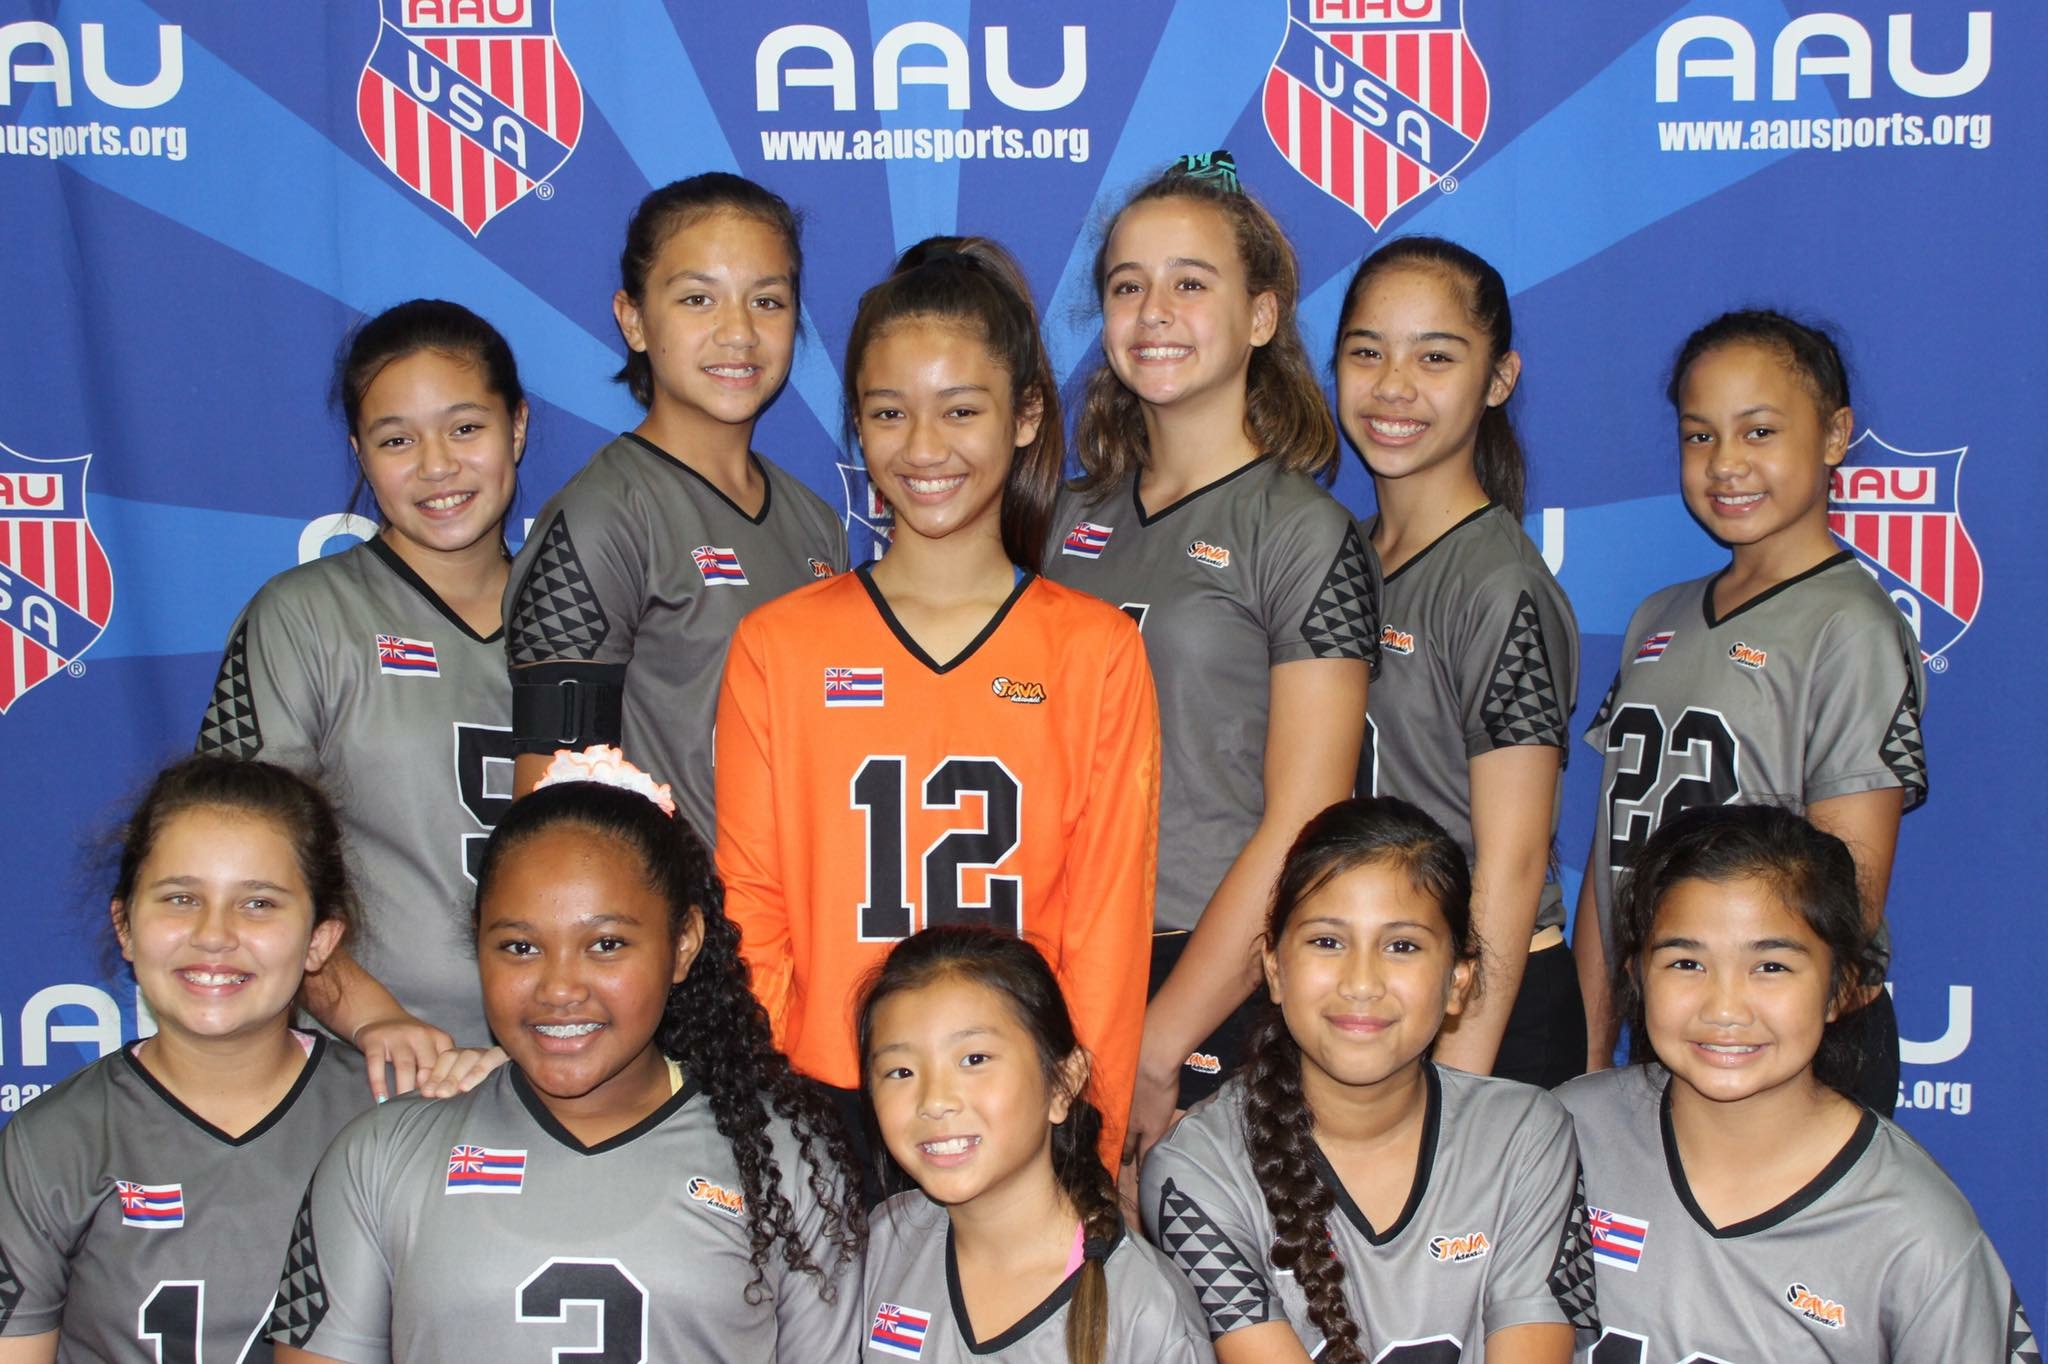 TAVA Black Wins 2017 AAU Honolulu Grand Prix